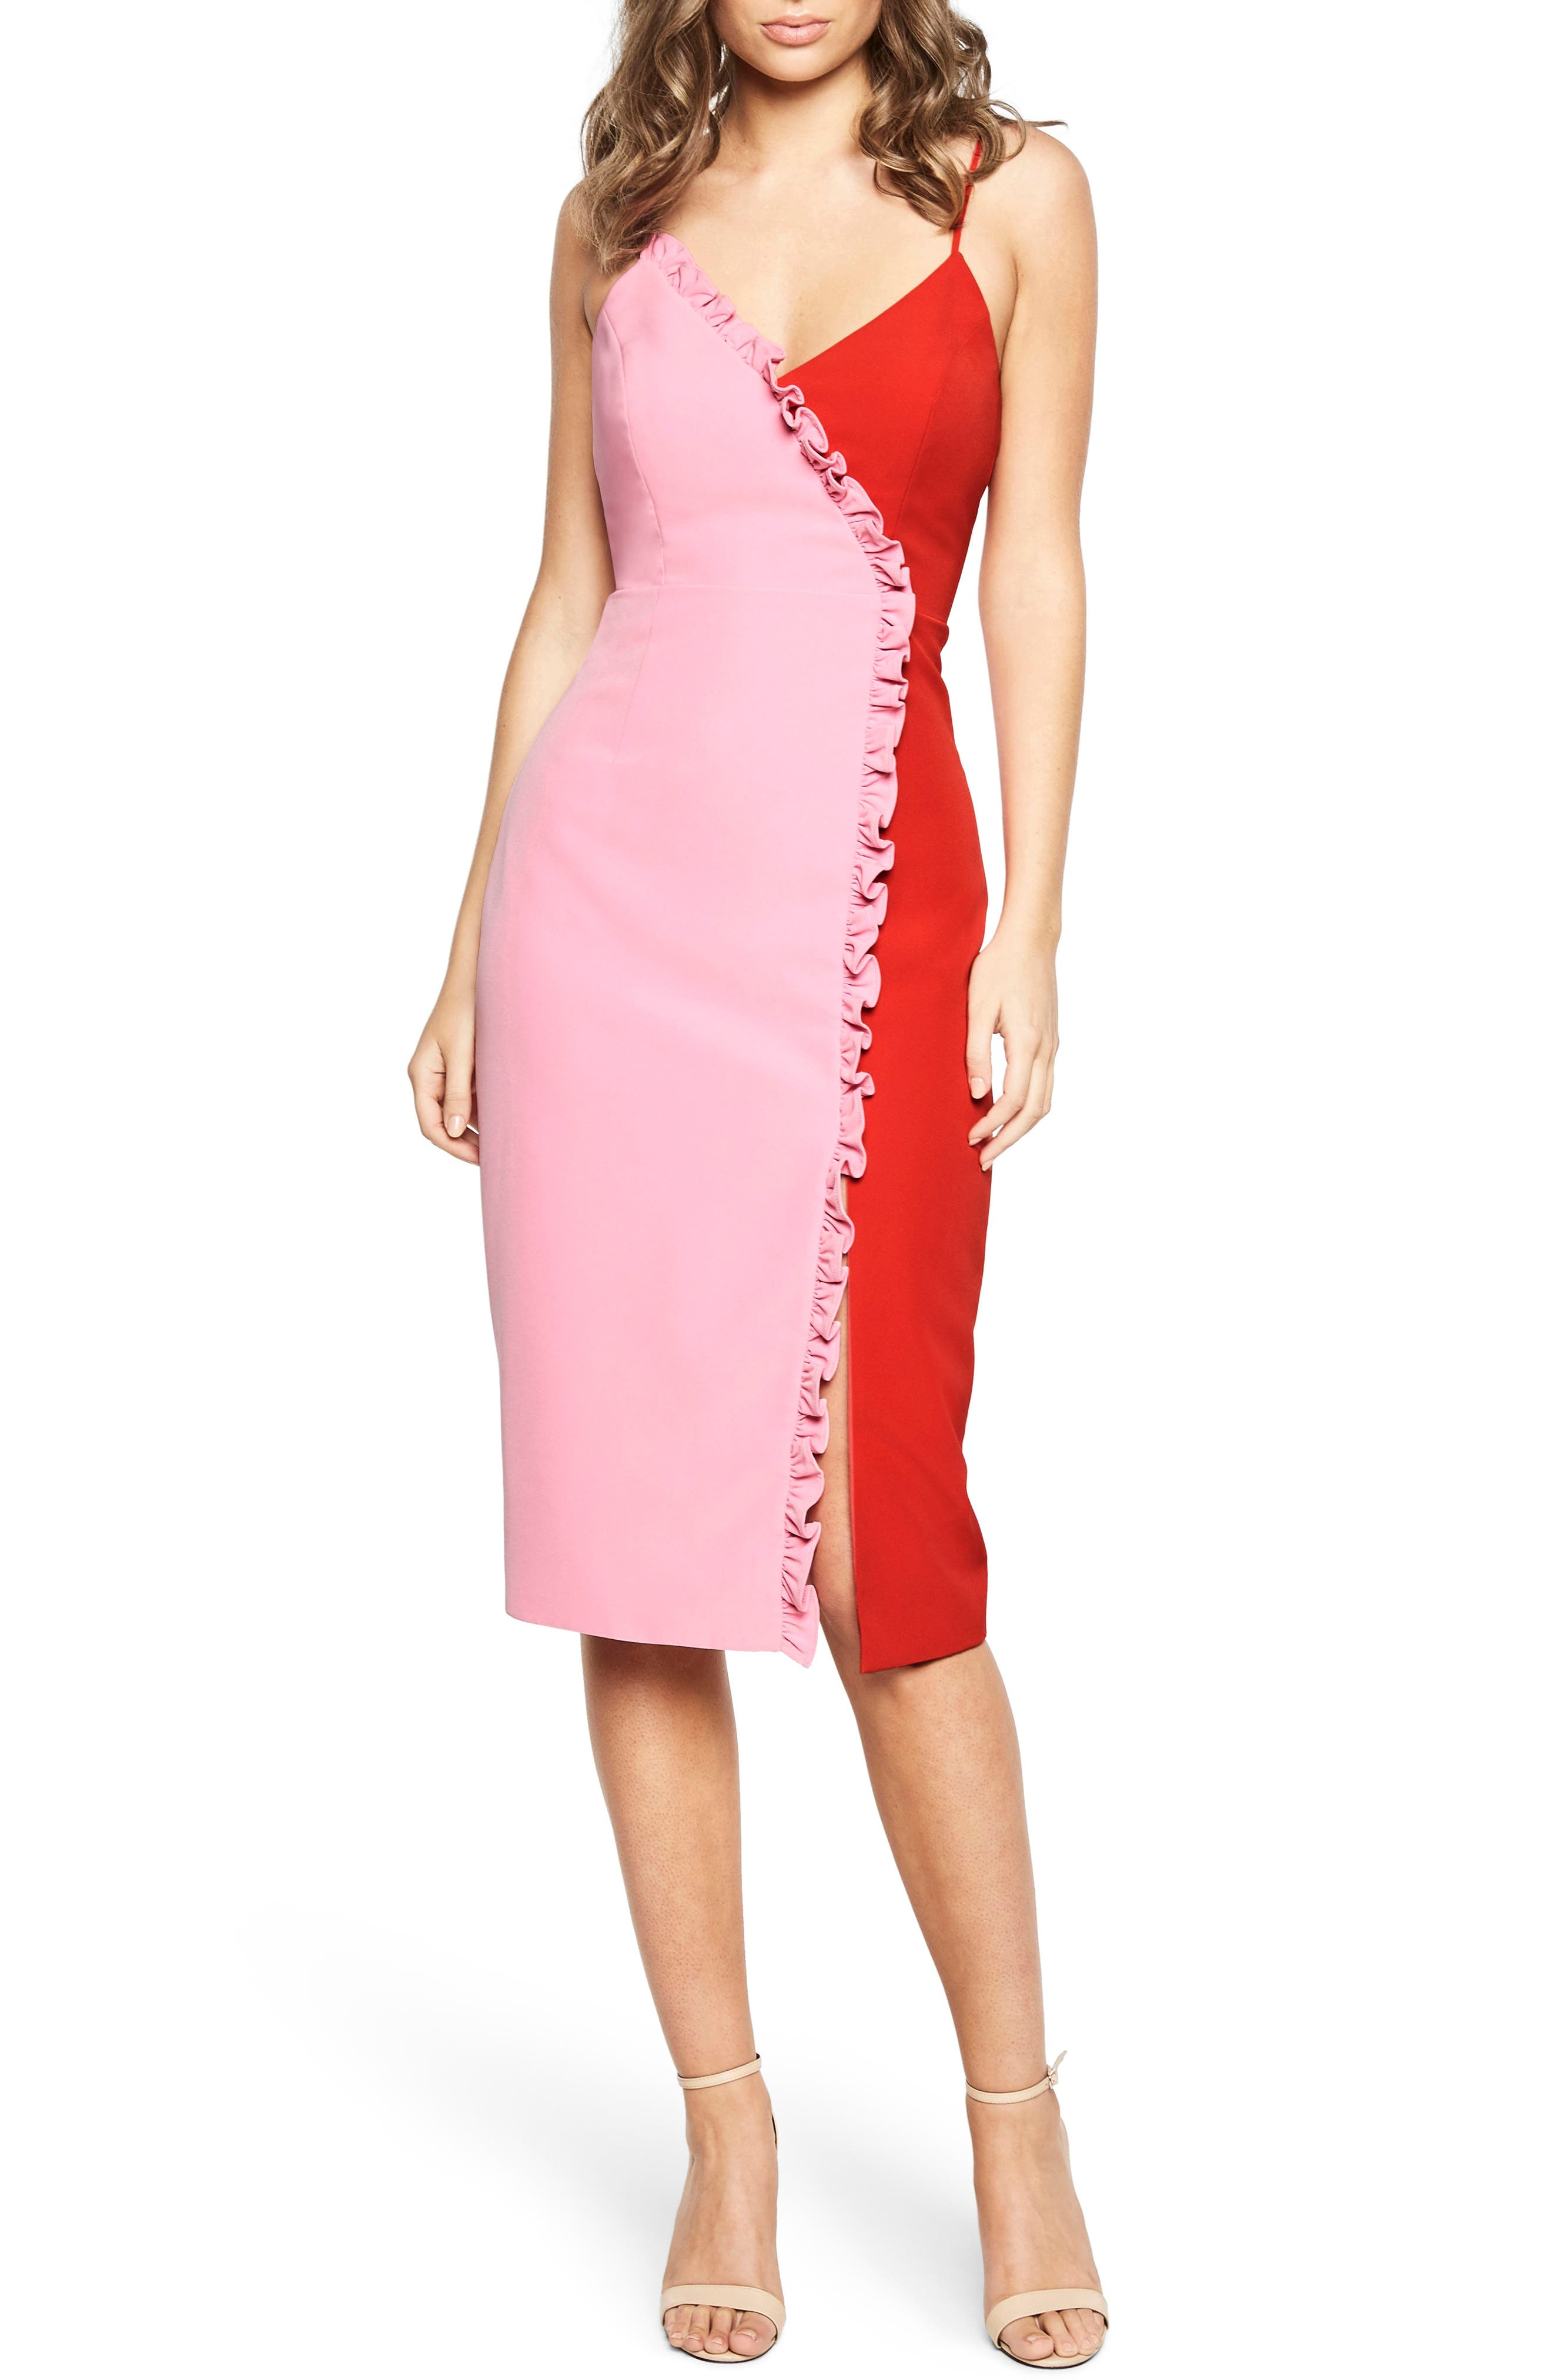 Sherbert Bomb Midi Dress,                         Main,                         color, 650